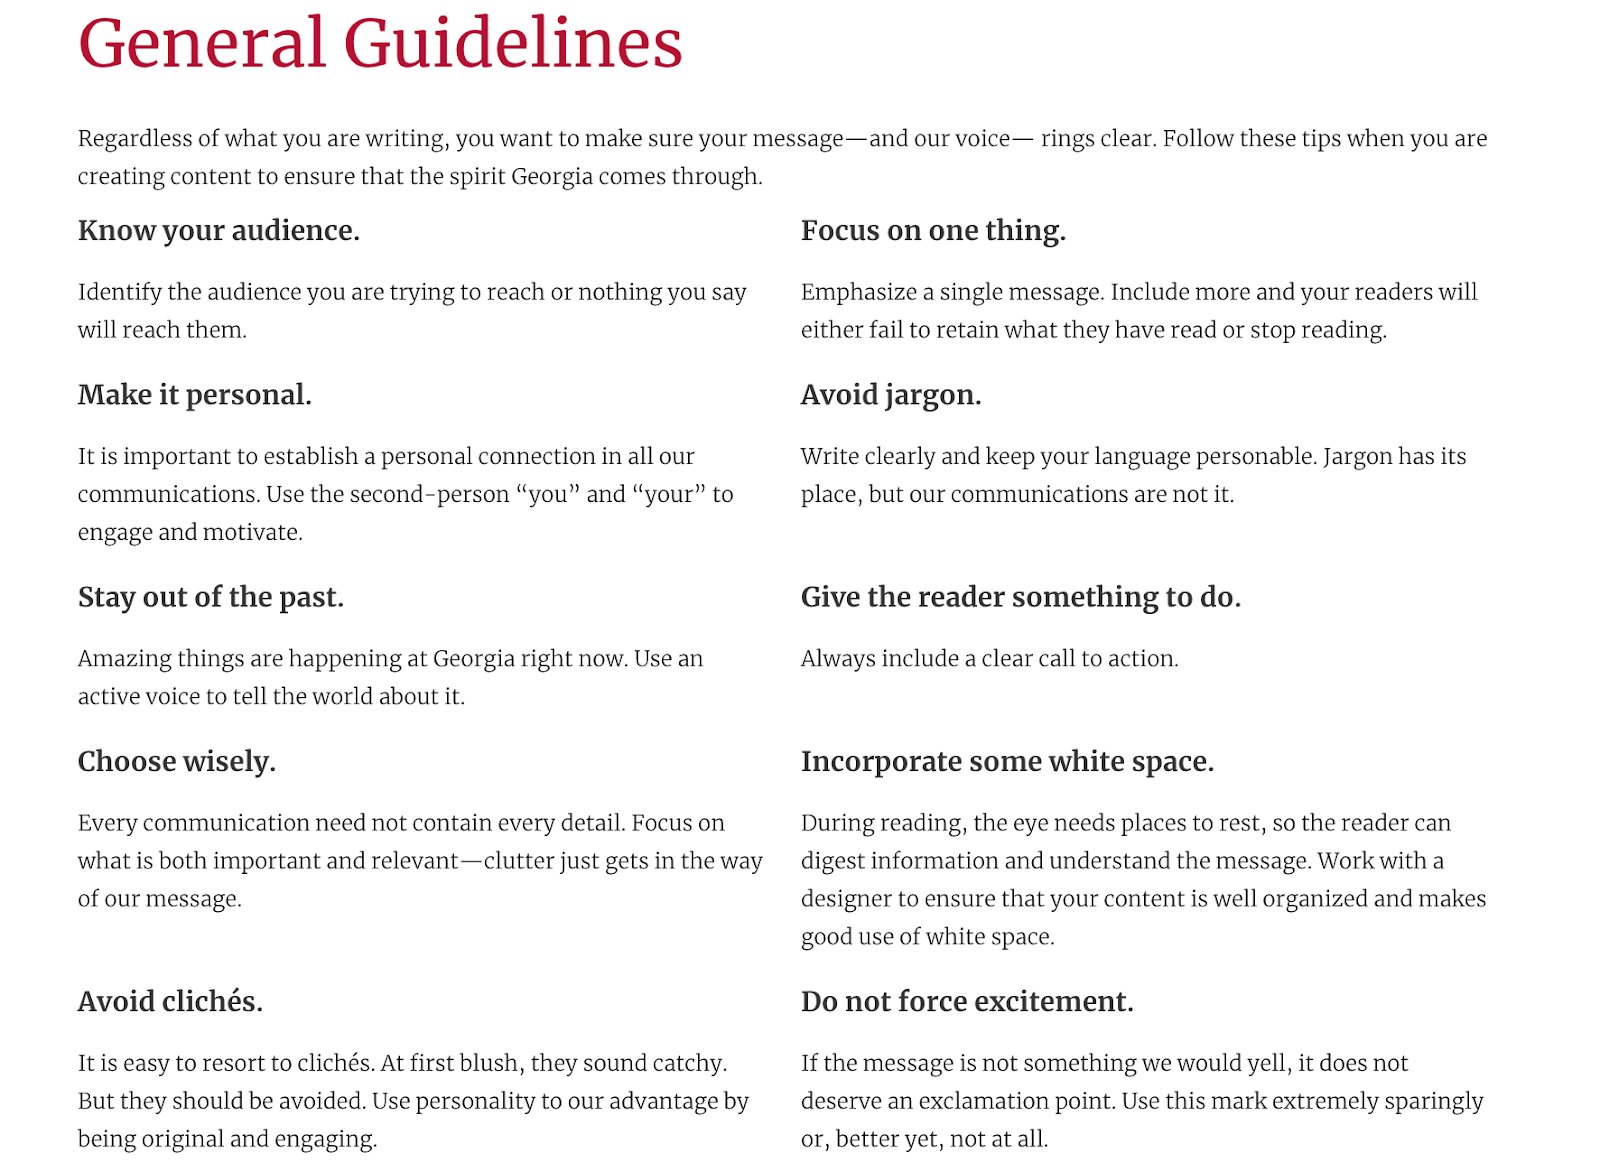 This image shows a section of the brand style guide for the University of Georgia. It lists some general guidelines such as know your audience, make it personal, focus on one thing, avoid jargon, and give the reader something to do.